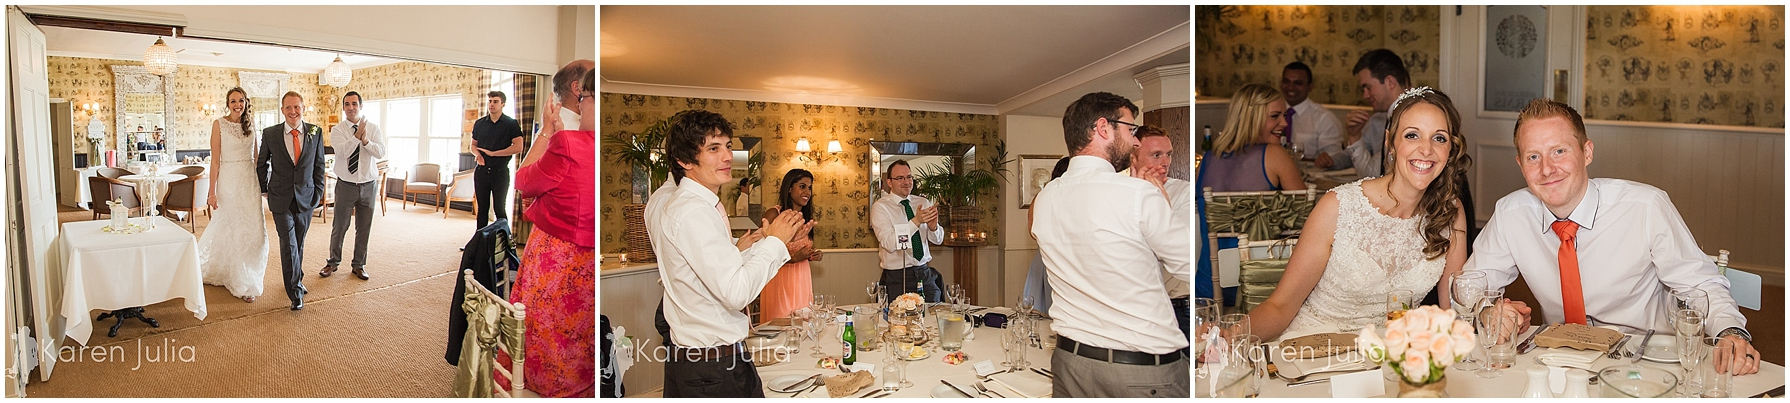 Shireburn-Arms-Wedding-Photography-37